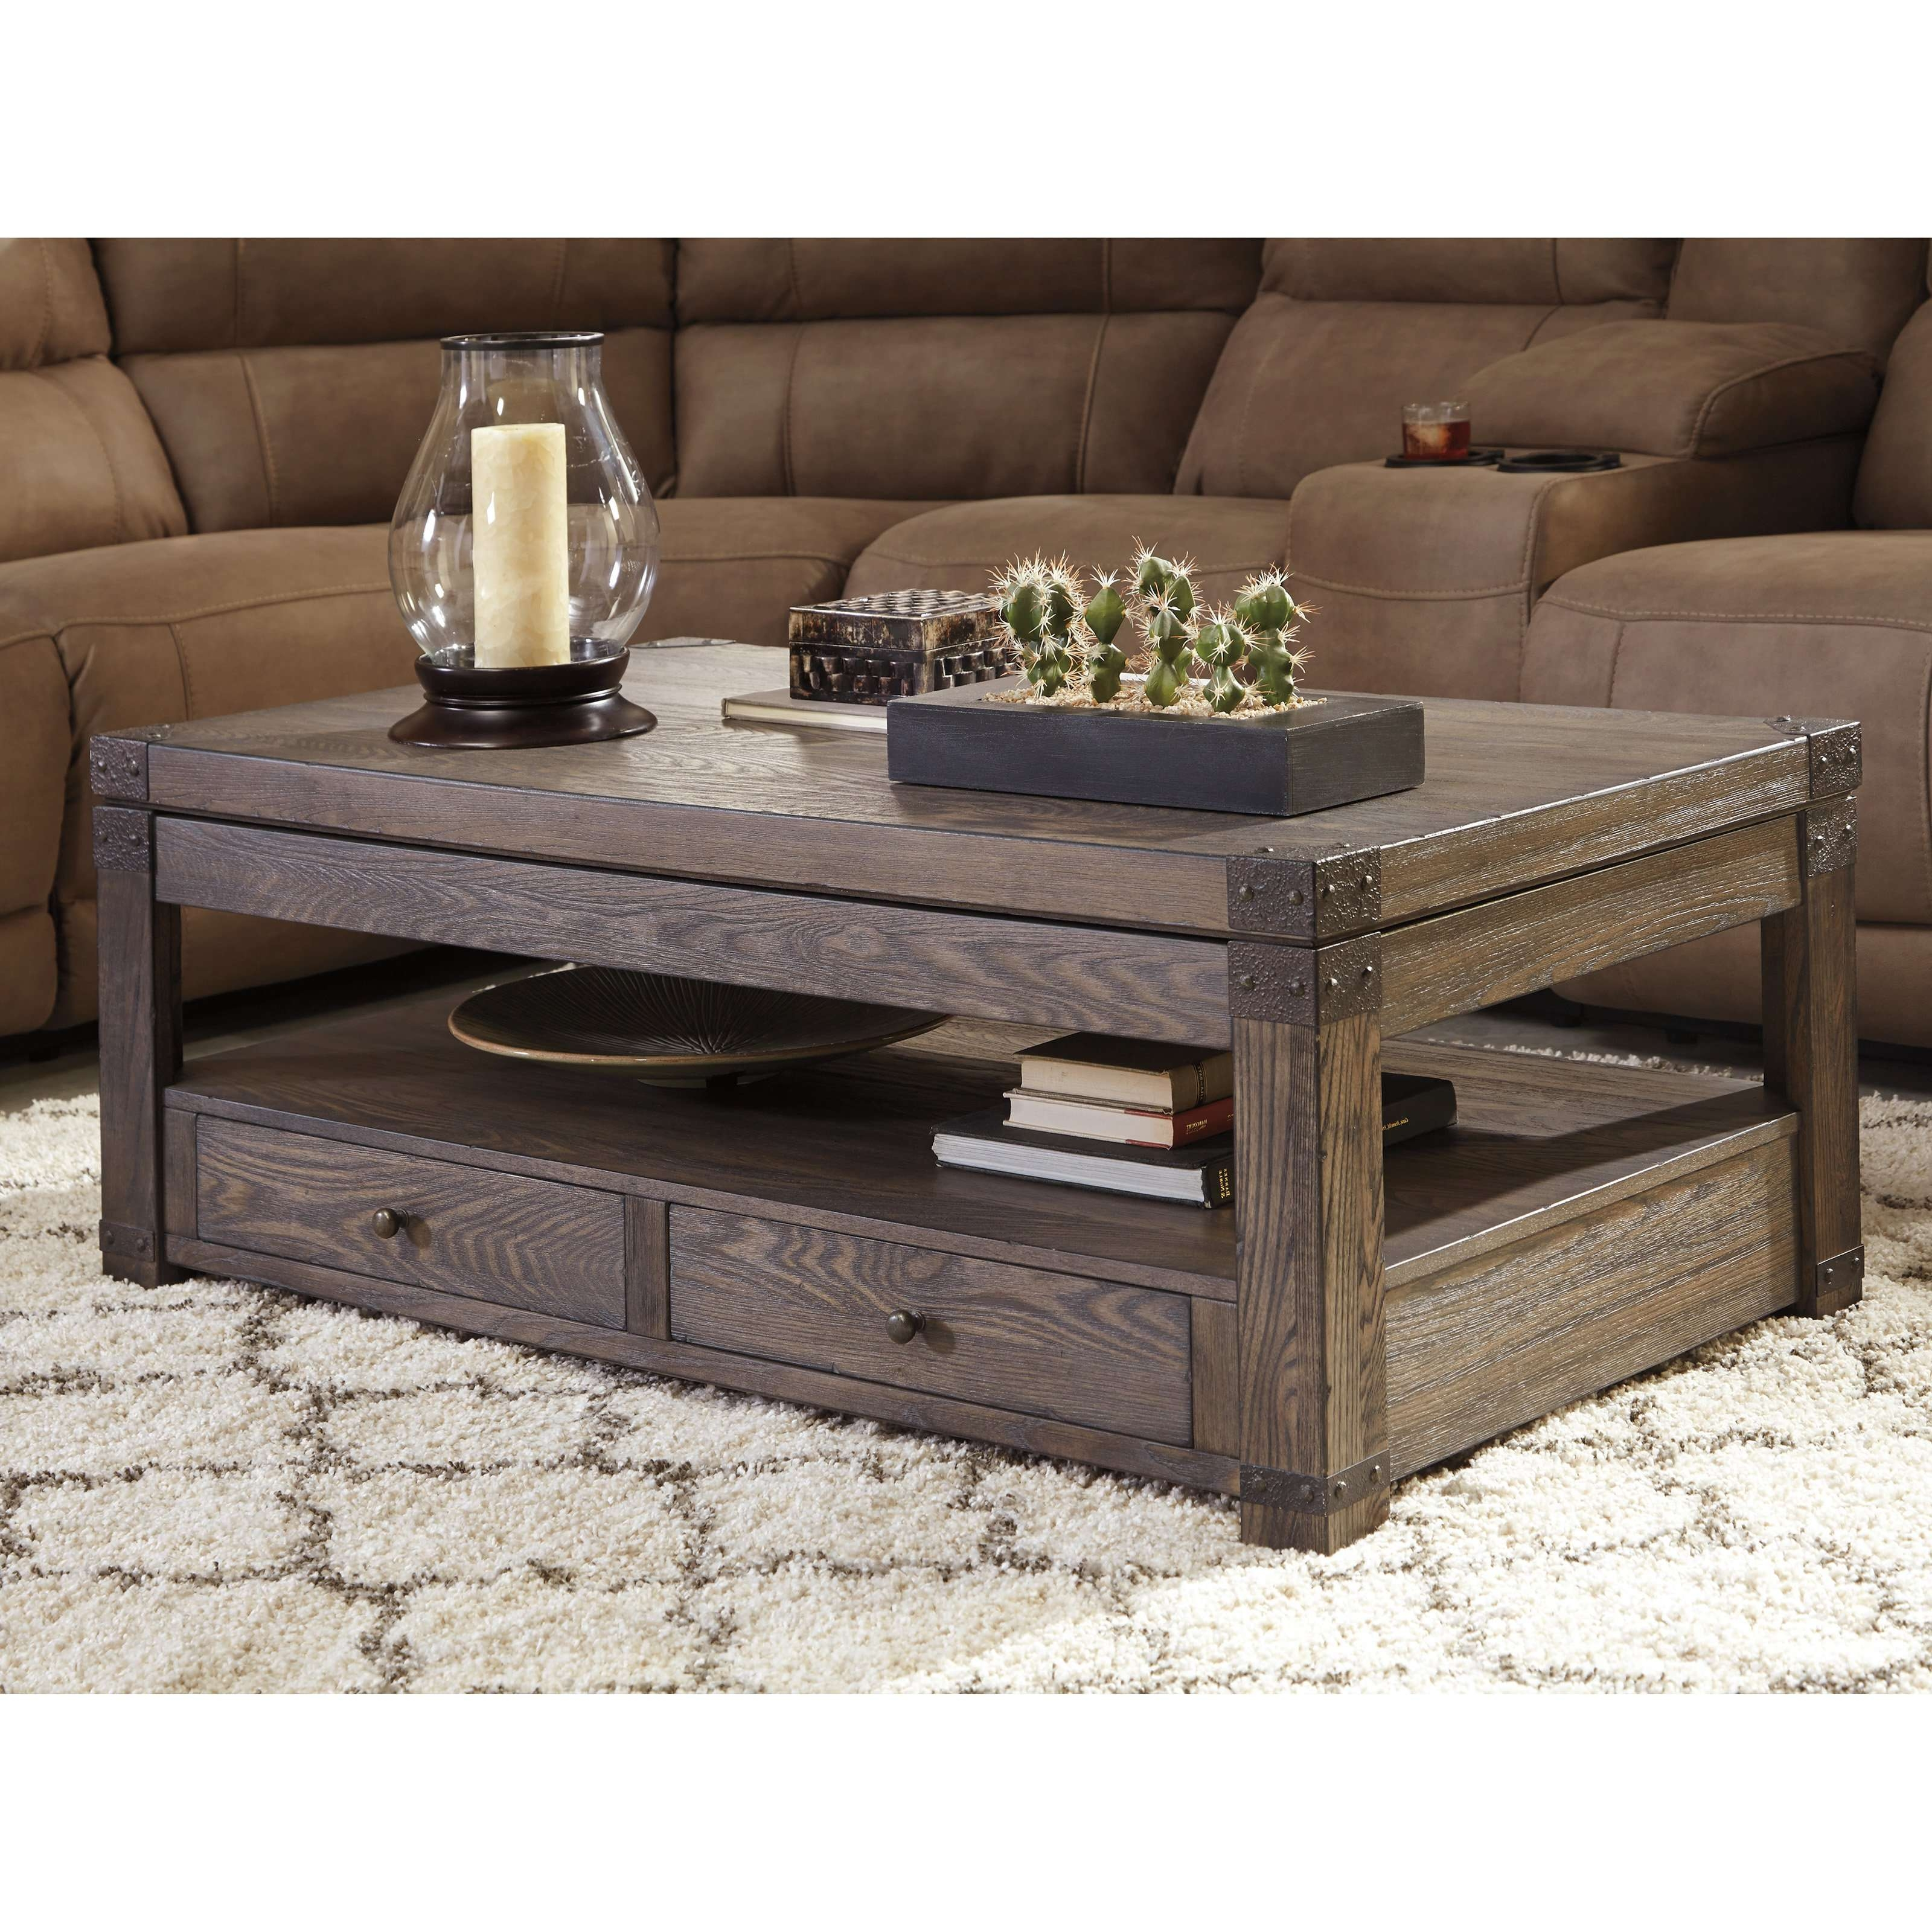 Most Recent Raisable Coffee Tables Pertaining To Sauder Cannery Bridge Lift Top Coffee Table (View 17 of 20)